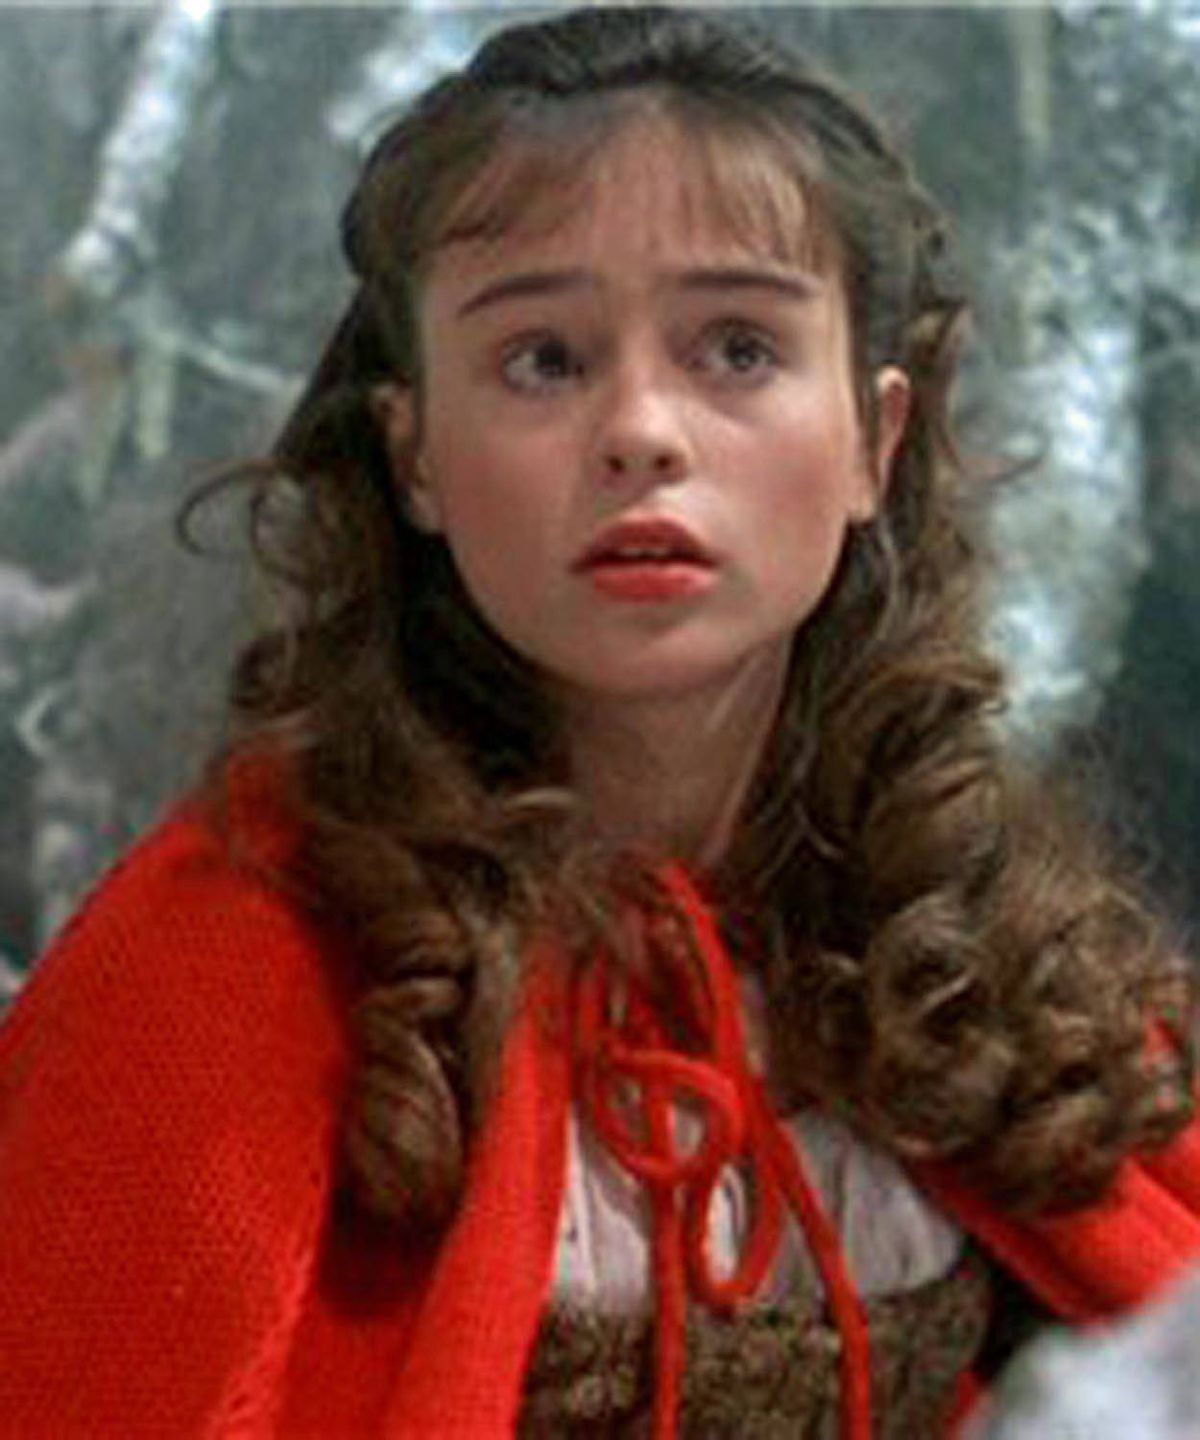 MOVIE The Company of Wolves Vision, 9 p.m. ET, 6 p.m. PT Directed by Neil Jordan, this 1985 British film merges elements of fantasy and horror into a surrealist pastiche. Set in modern times but working off the classic Little Red Riding Hood fable, the story follows the plucky teen Rosaleen (Sarah Patterson), who sets off into the foreboding forest to visit her Granny (Angela Lansbury) and happens upon a handsome young huntsman (Micha Bergese) along the way. Is he Rosaleen's protector or the big bad wolf? The answer is the stuff of which nightmares are made.